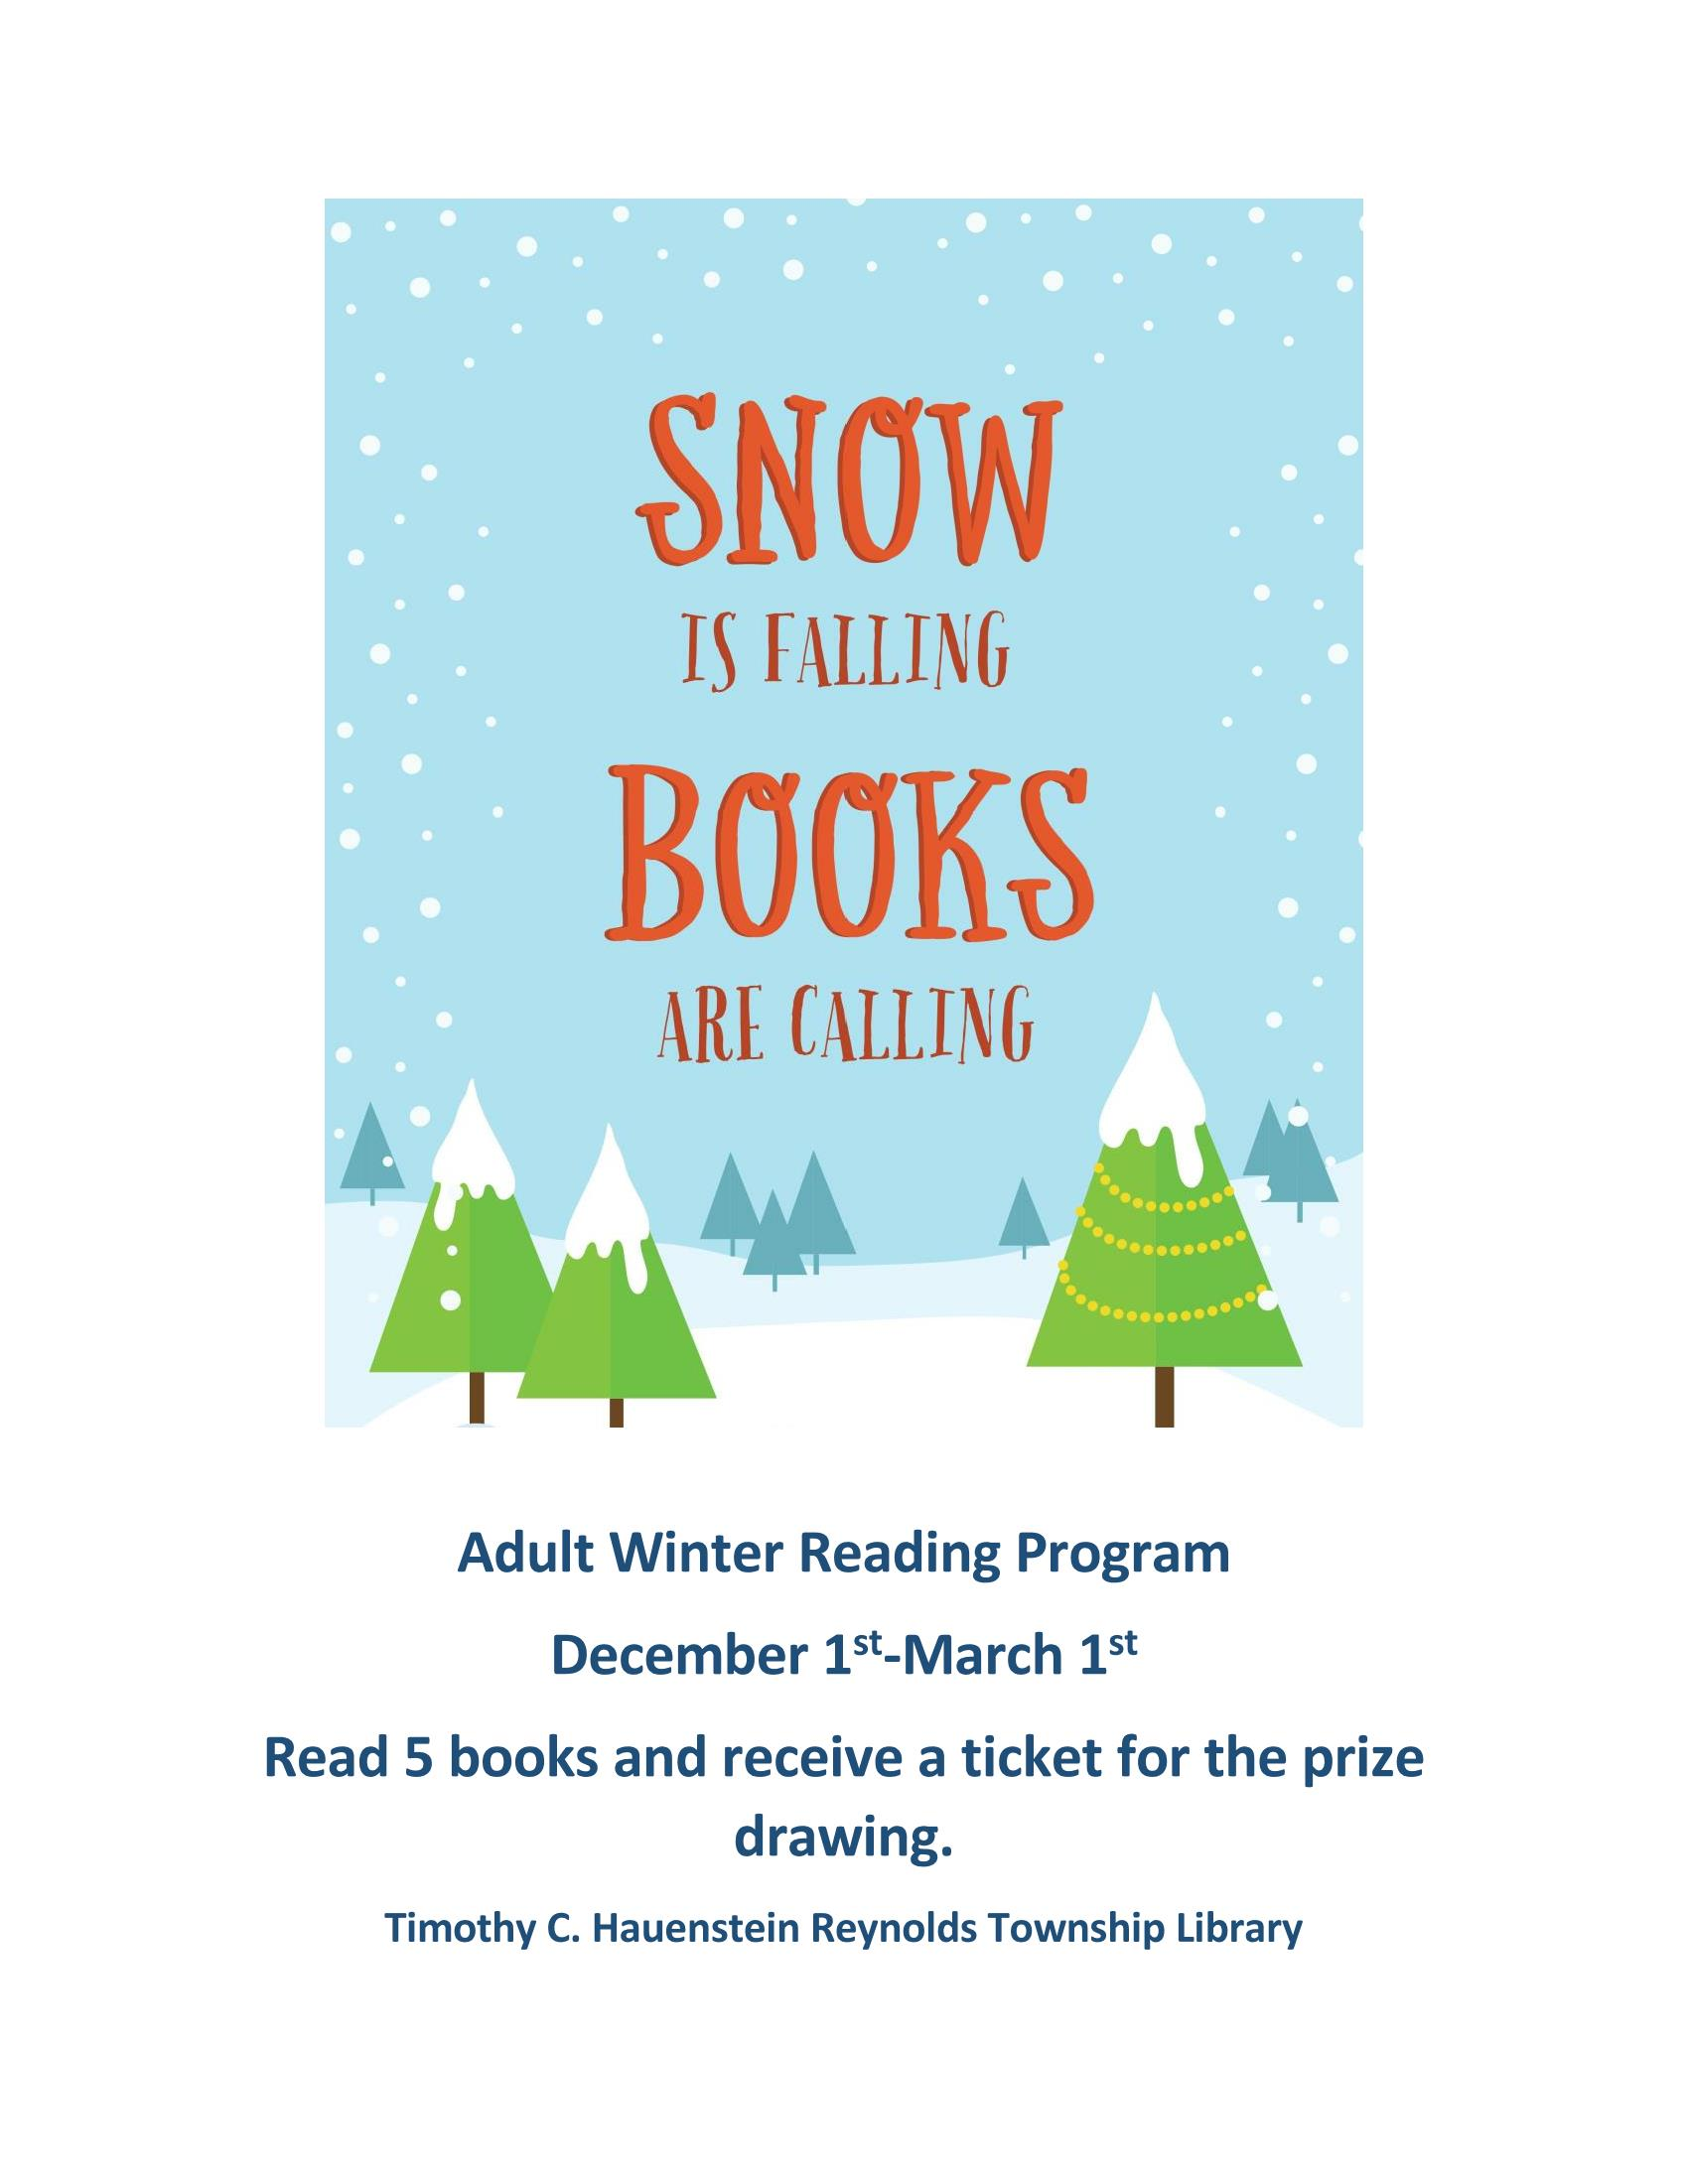 Adult Winter Reading Program poster_Page_1.jpeg